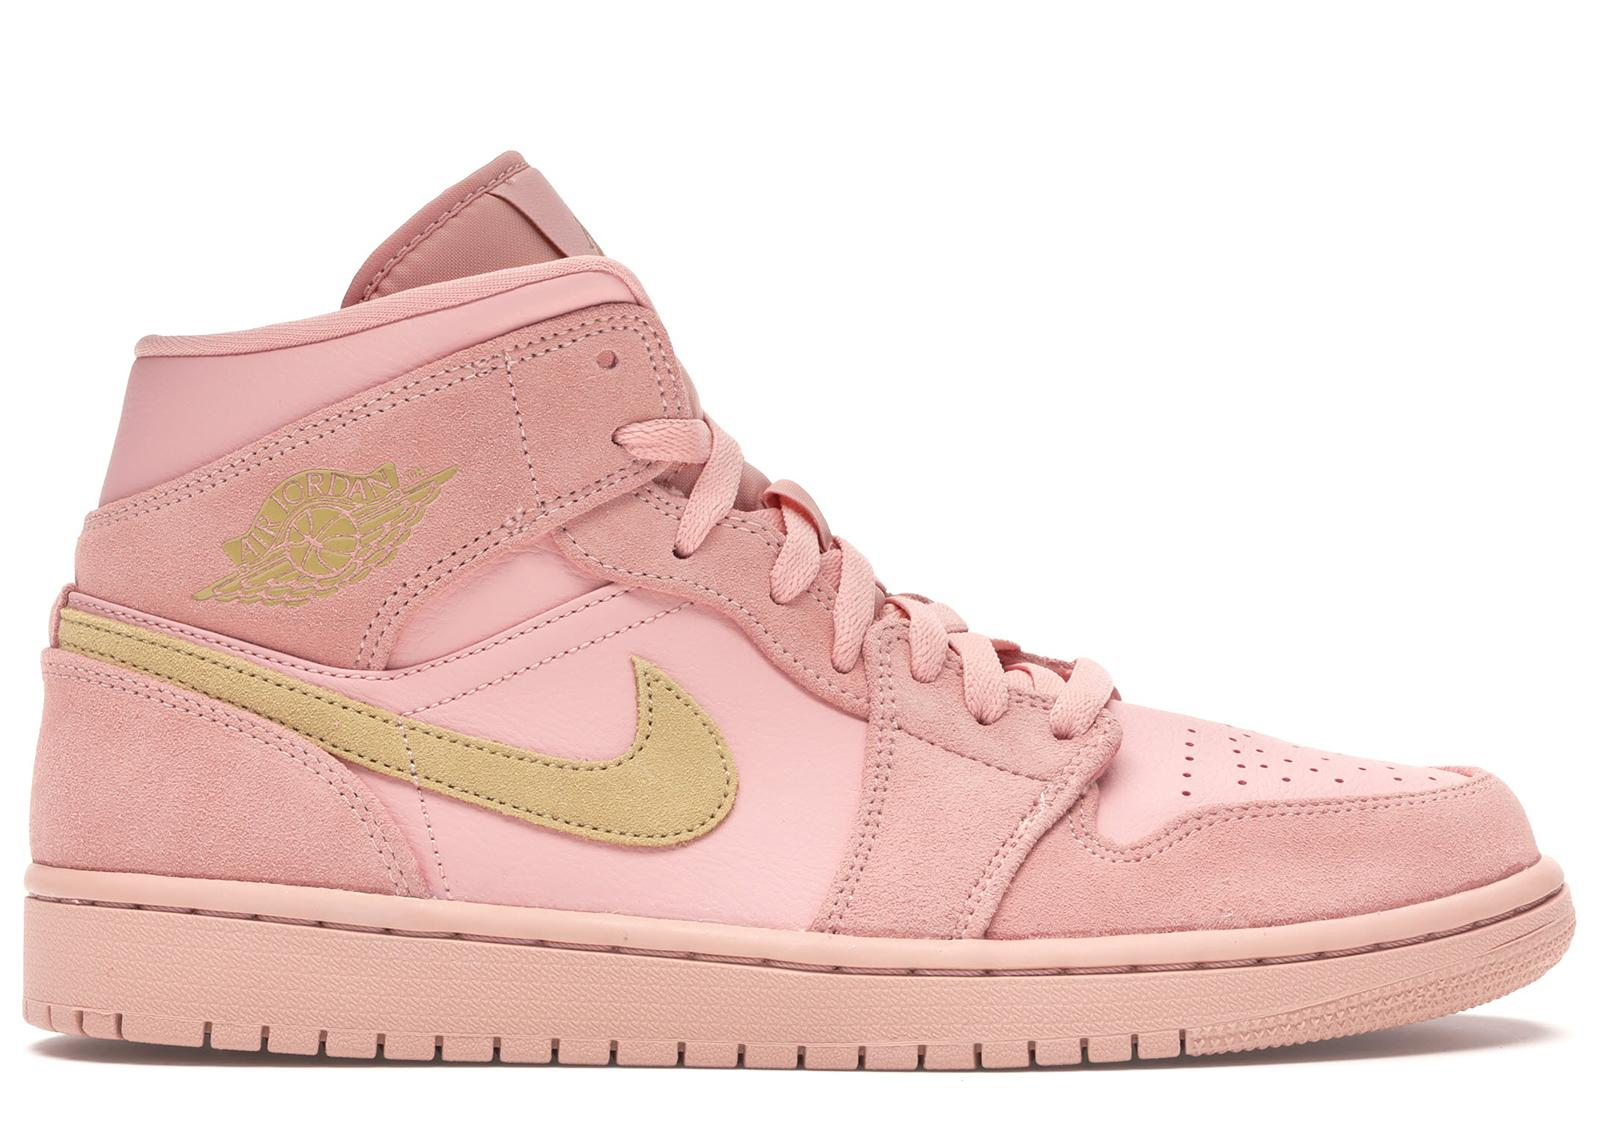 Nike 1 Mid Coral Gold in Pink for Men - Lyst